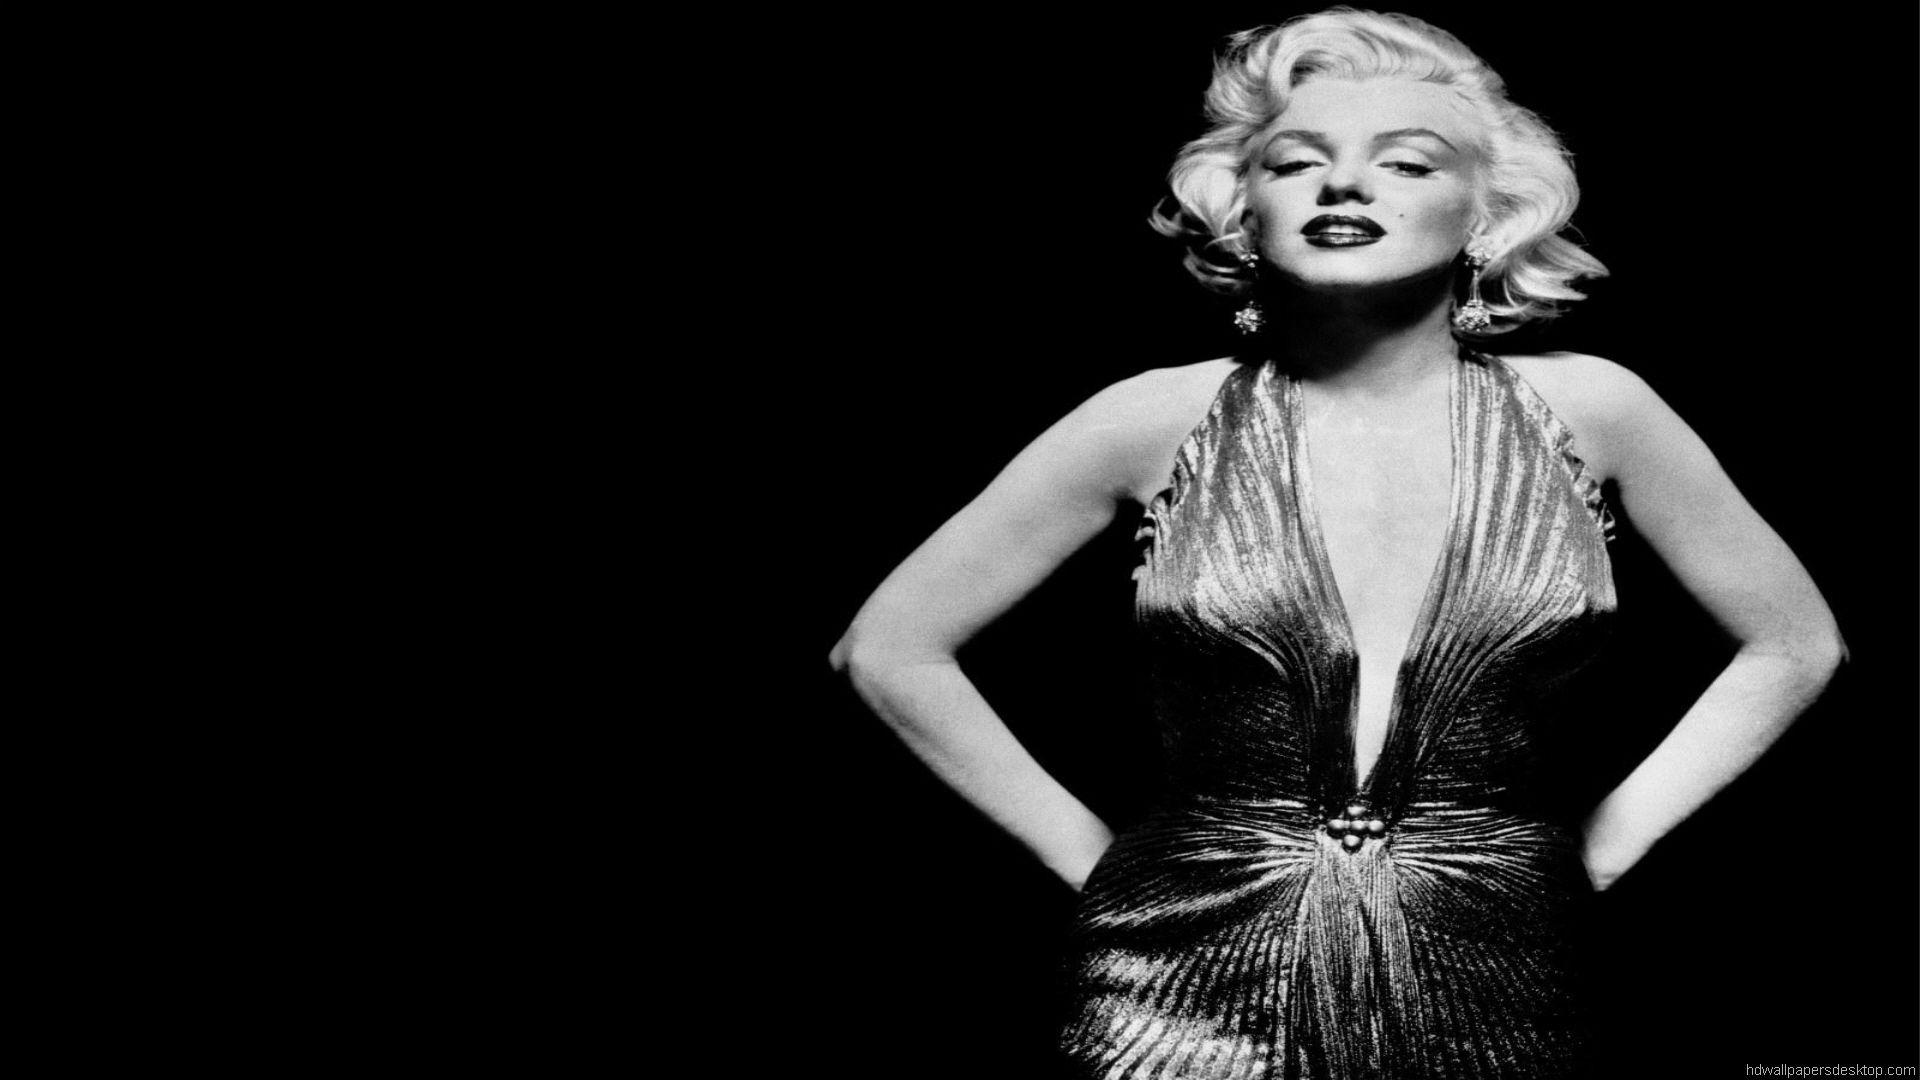 Download free marilyn monroe wallpapers for your mobile